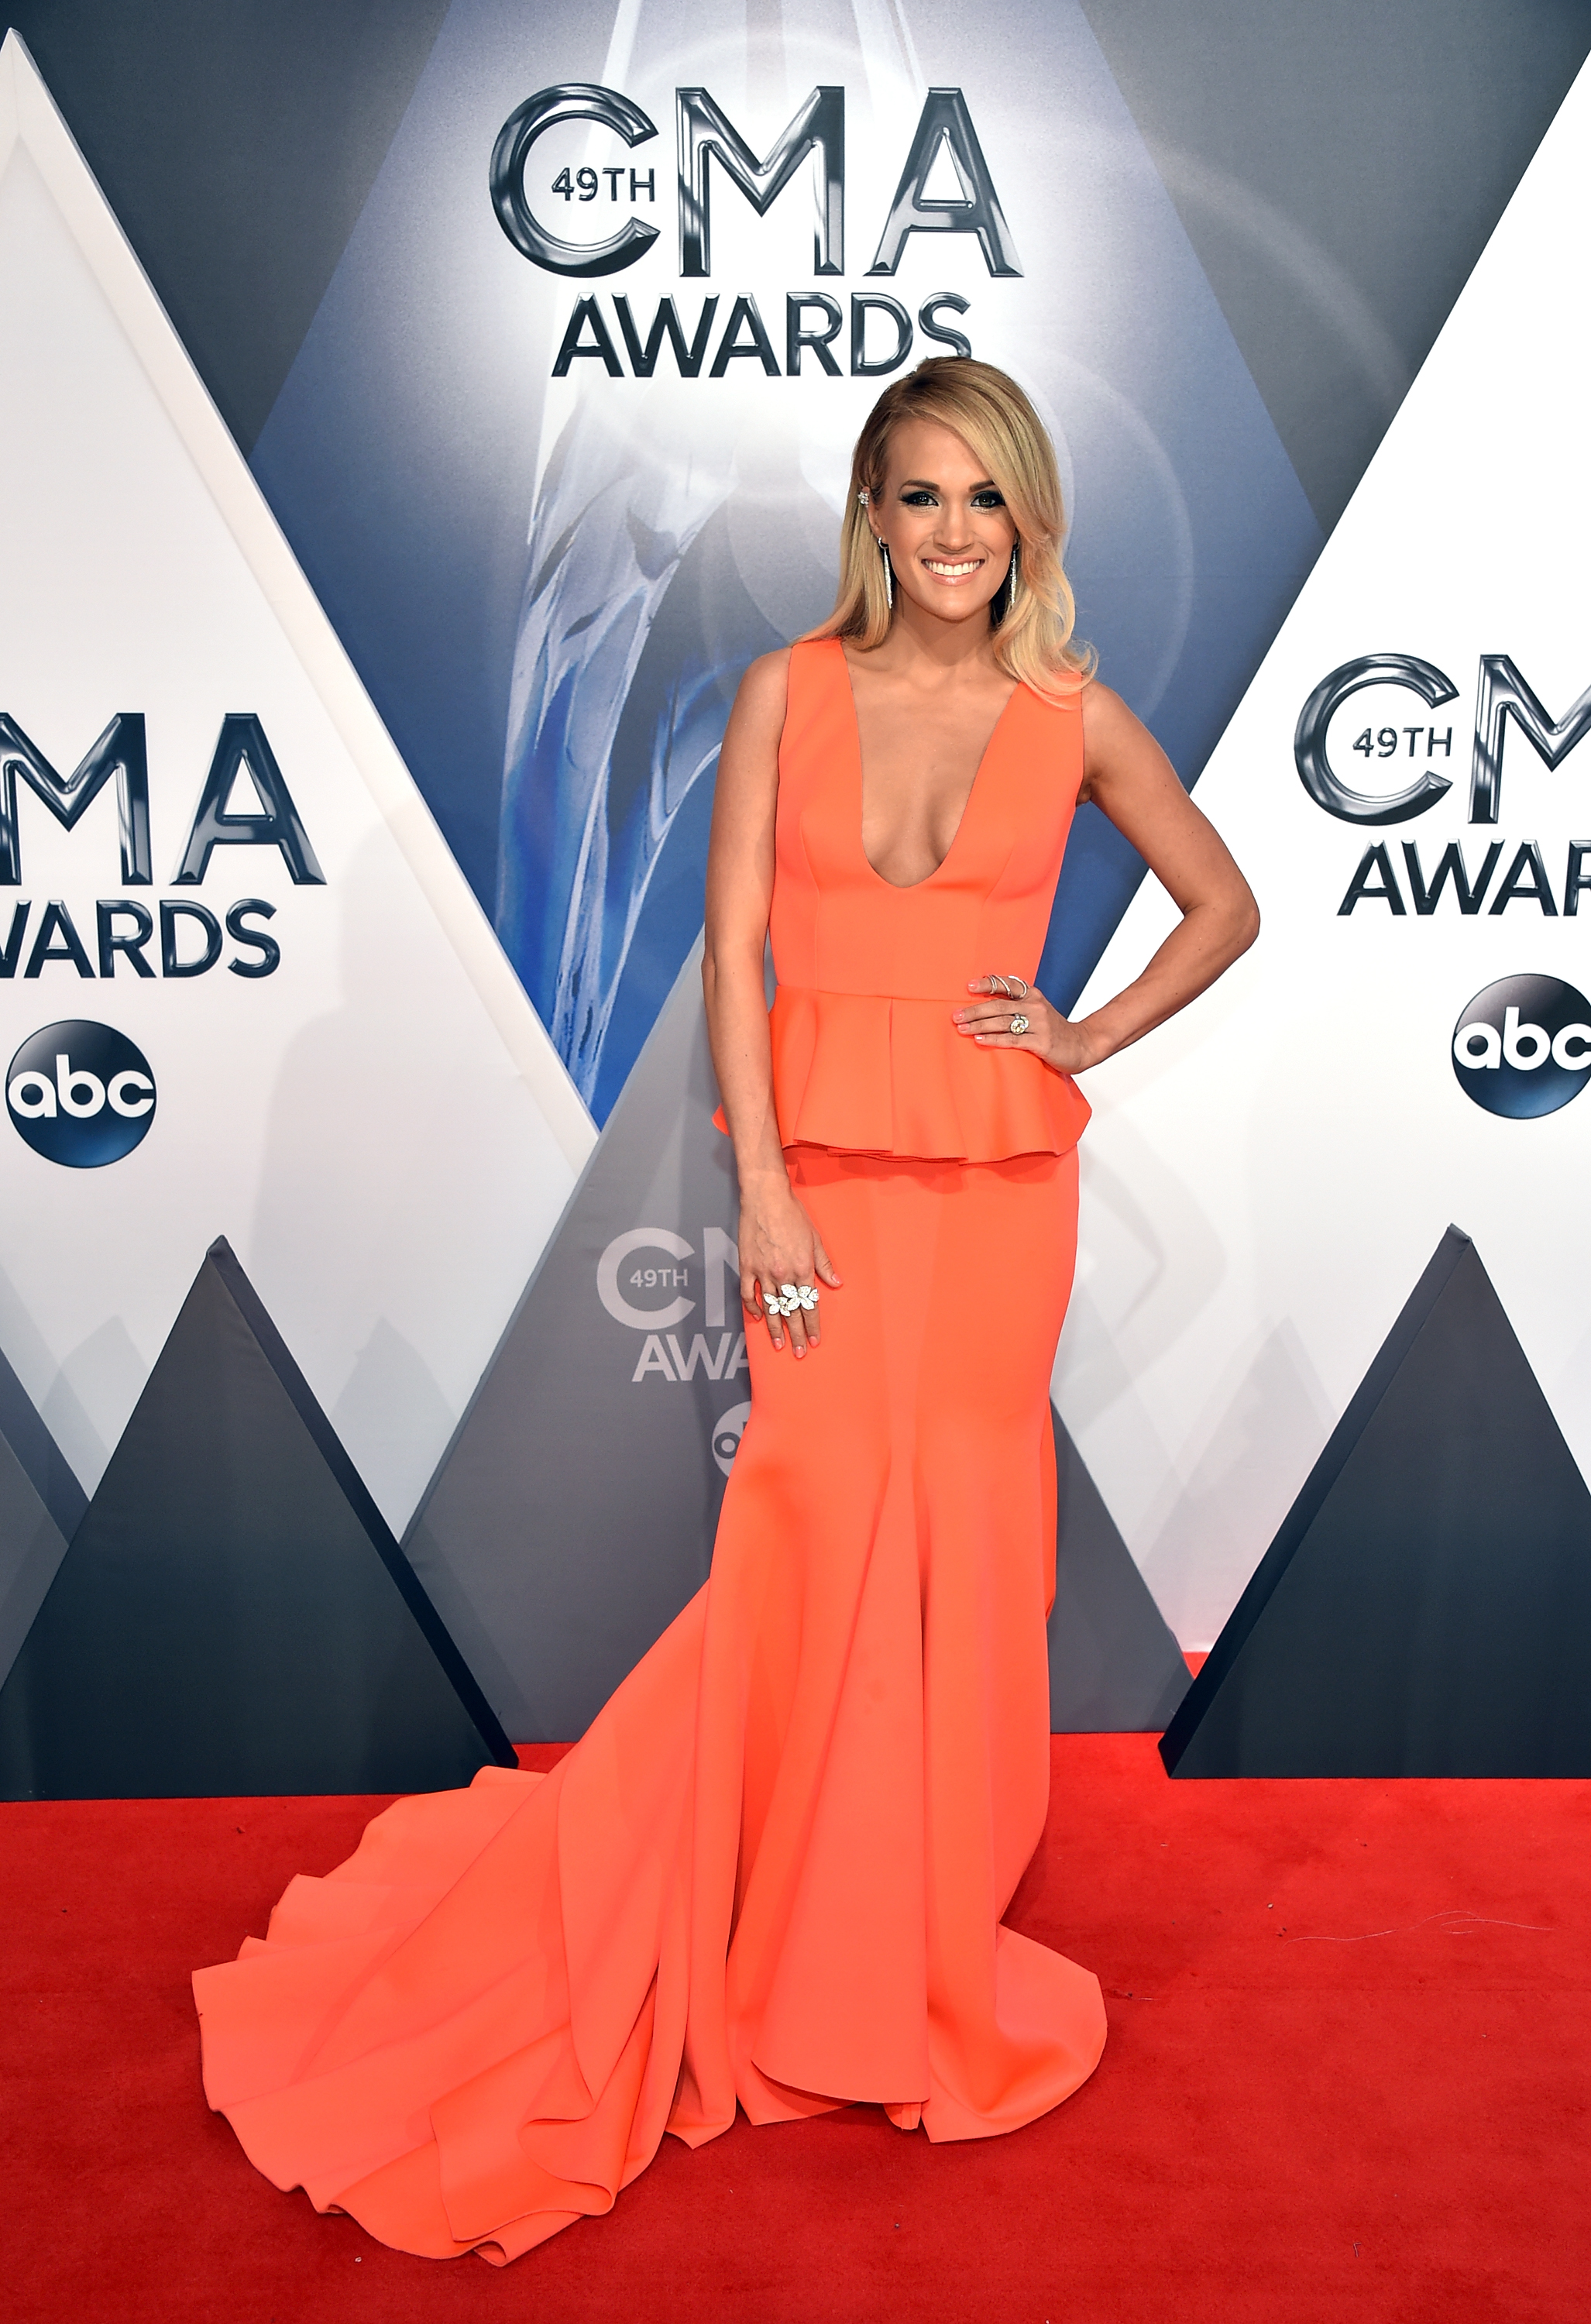 Carrie Underwood at the 49th annual CMA Awards on November 4, 2015; Photo by John Shearer/WireImage